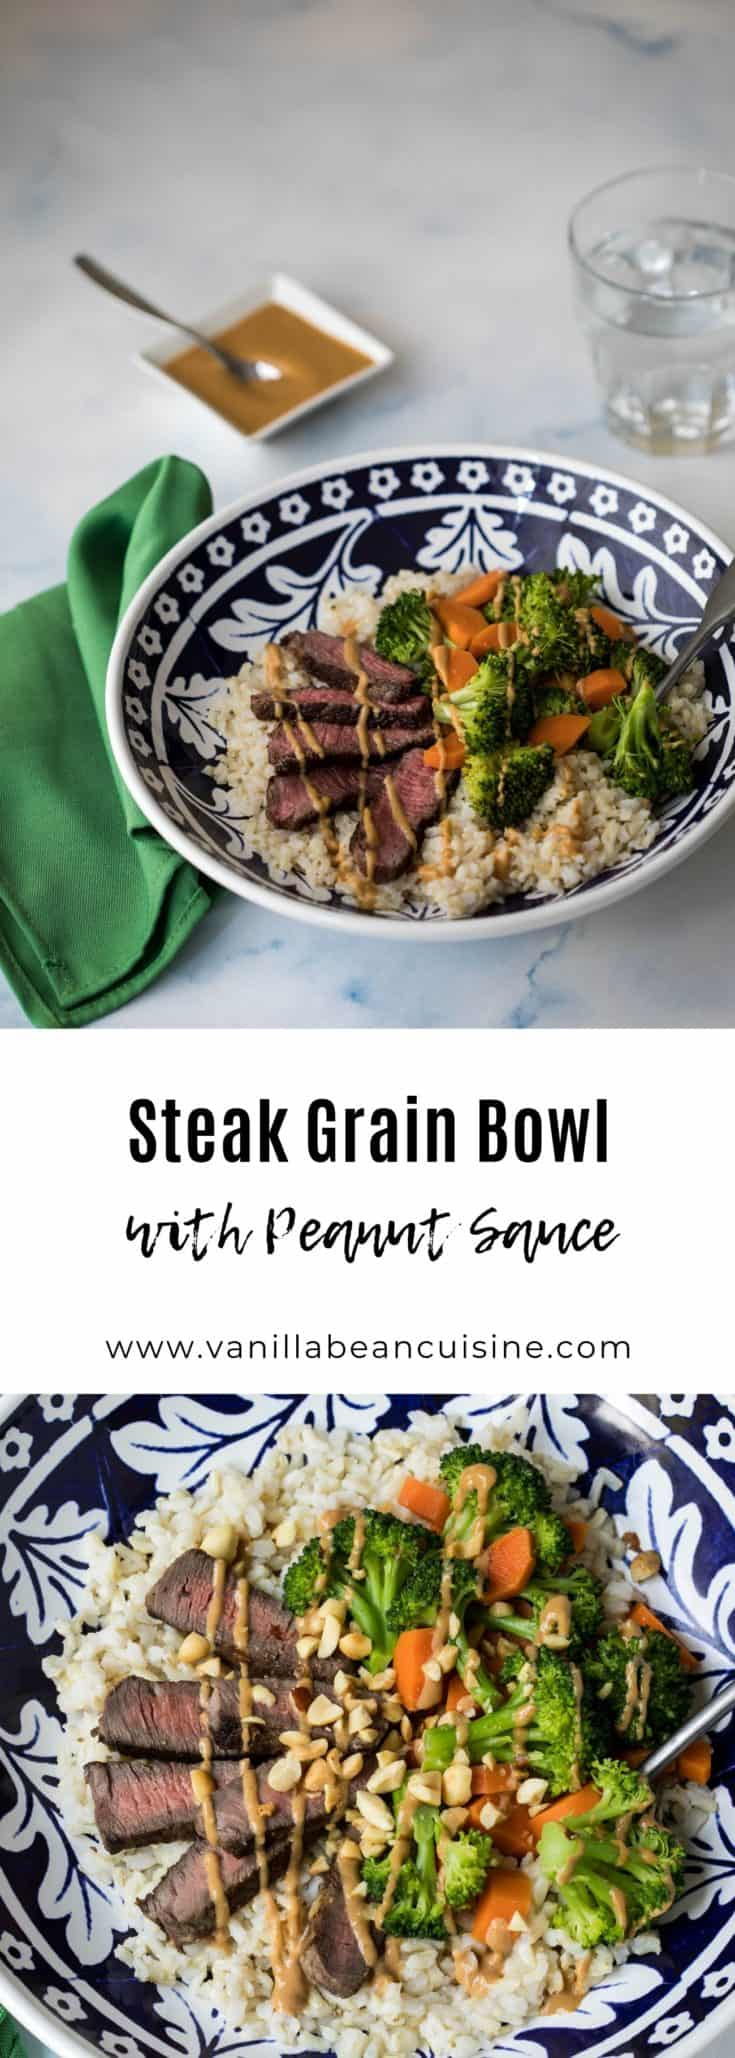 This steak brown rice grain bowl is healthy and delicious. Features brown rice topped with steak, carrots, broccoli, and drizzled with peanut sauce. #grainbowl #ricebowl #healthydinner #vanillabeancuisine #pickyeaters